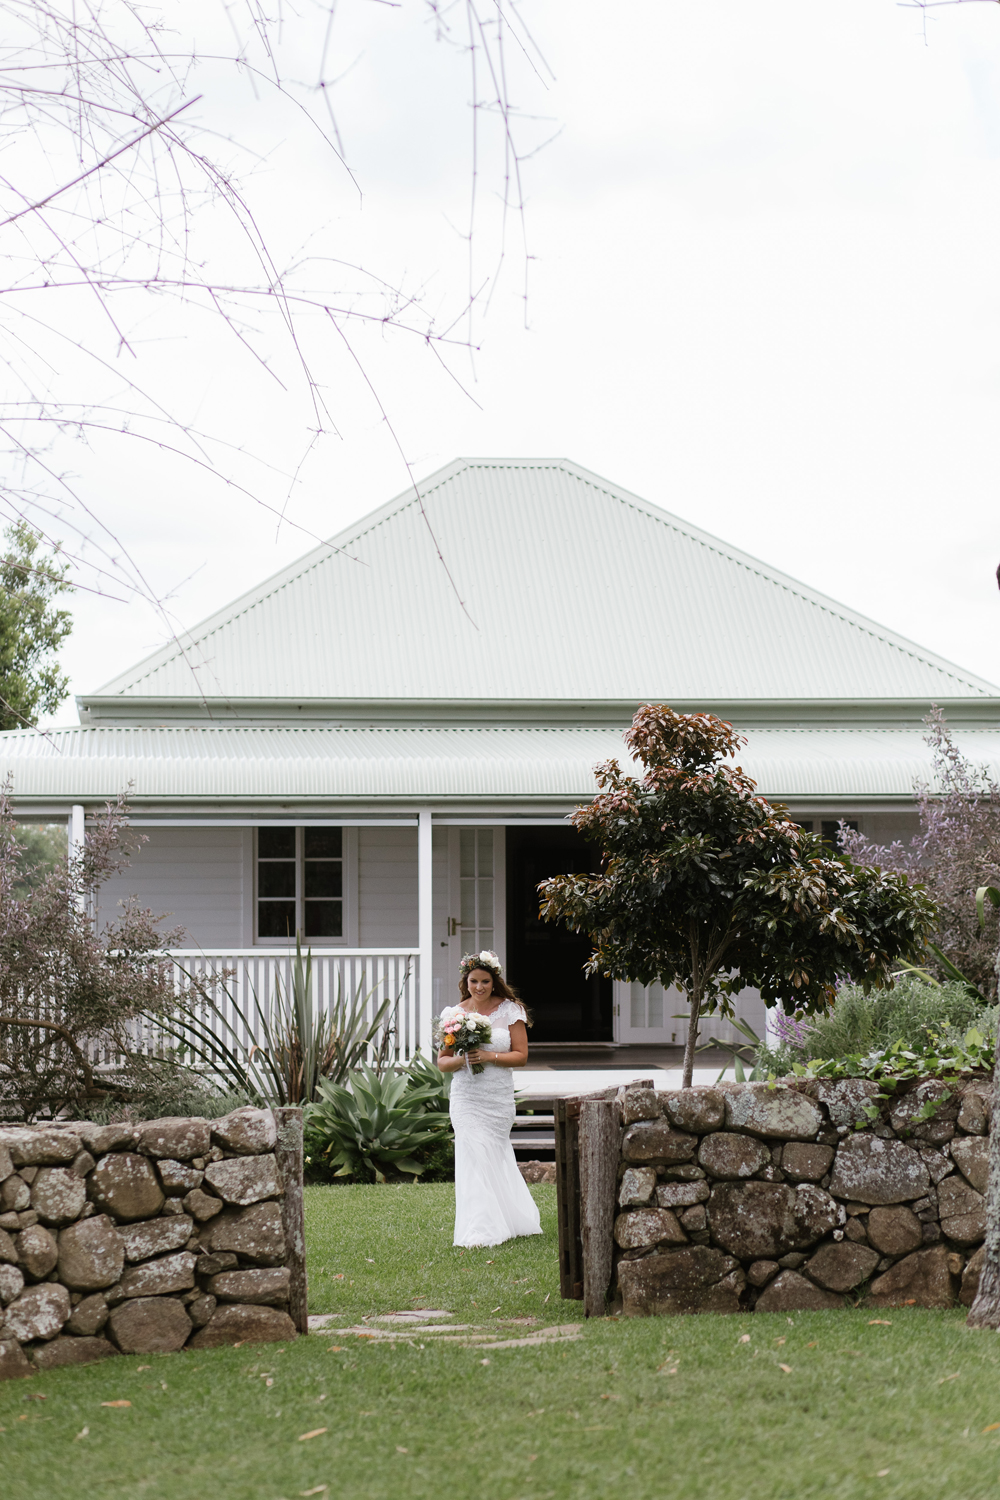 062-Byron-Bay-Wedding-Photographer-Carly-Tia-Photography.jpg